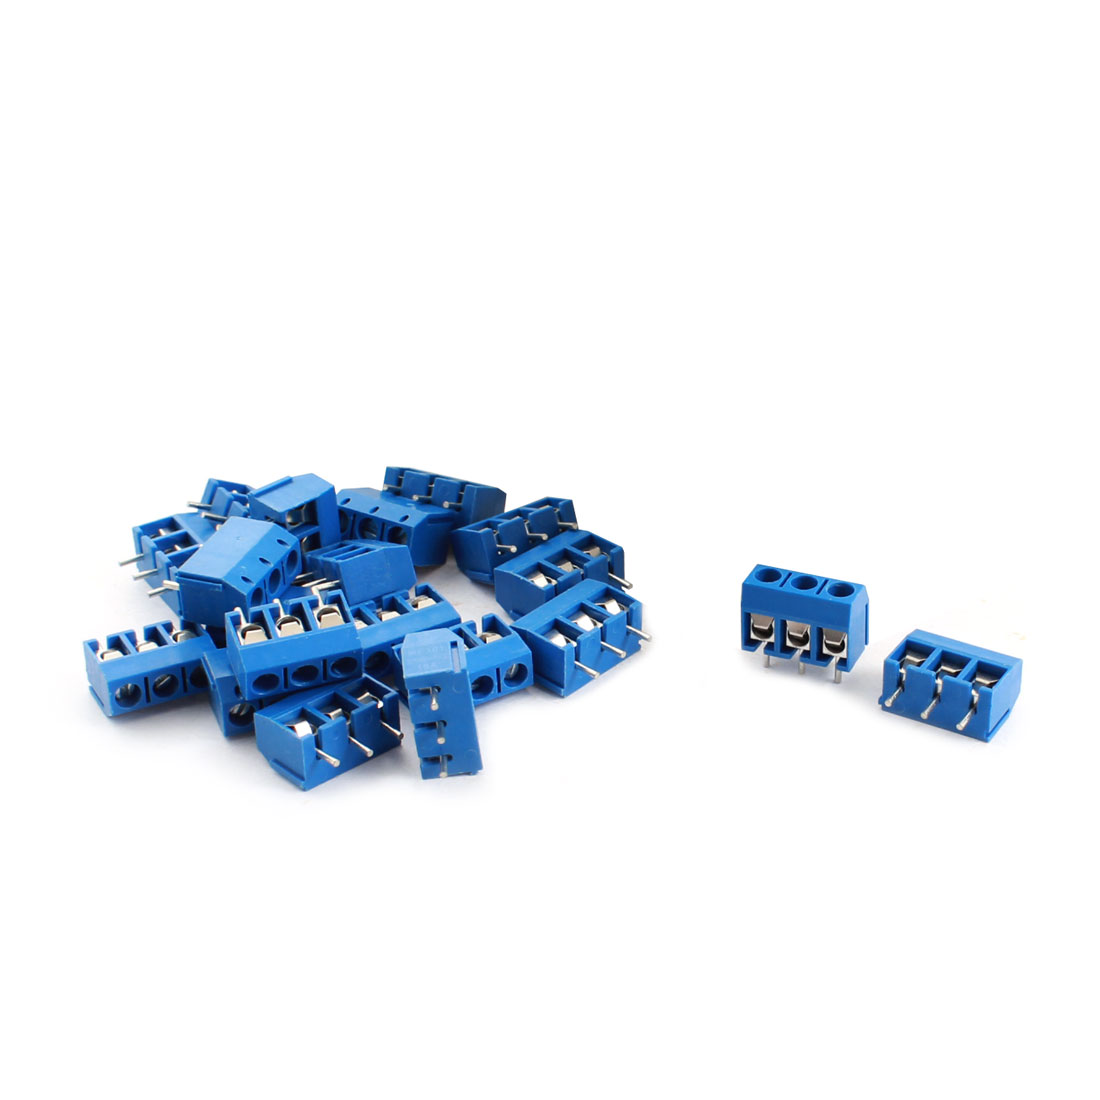 20Pcs 3 Pin 5.08mm Pitch PCB Board Mount Screw Terminal Block 12A 300V Blue